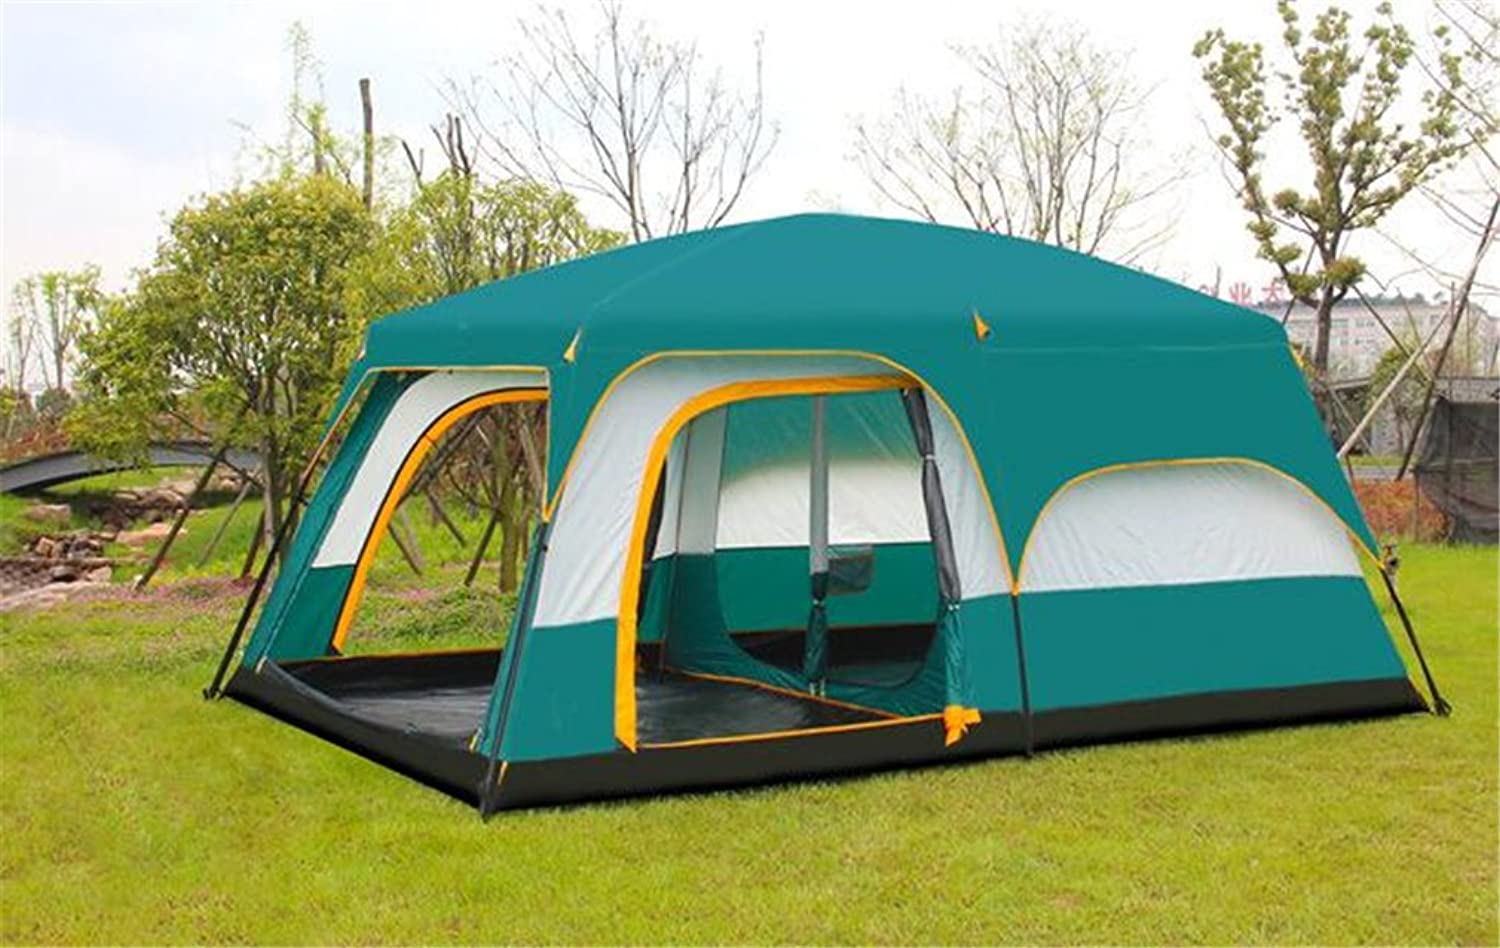 TTYY Super Large Tent 1012 People Outdoor Camping Travel Spring Tour Picnic Adventure